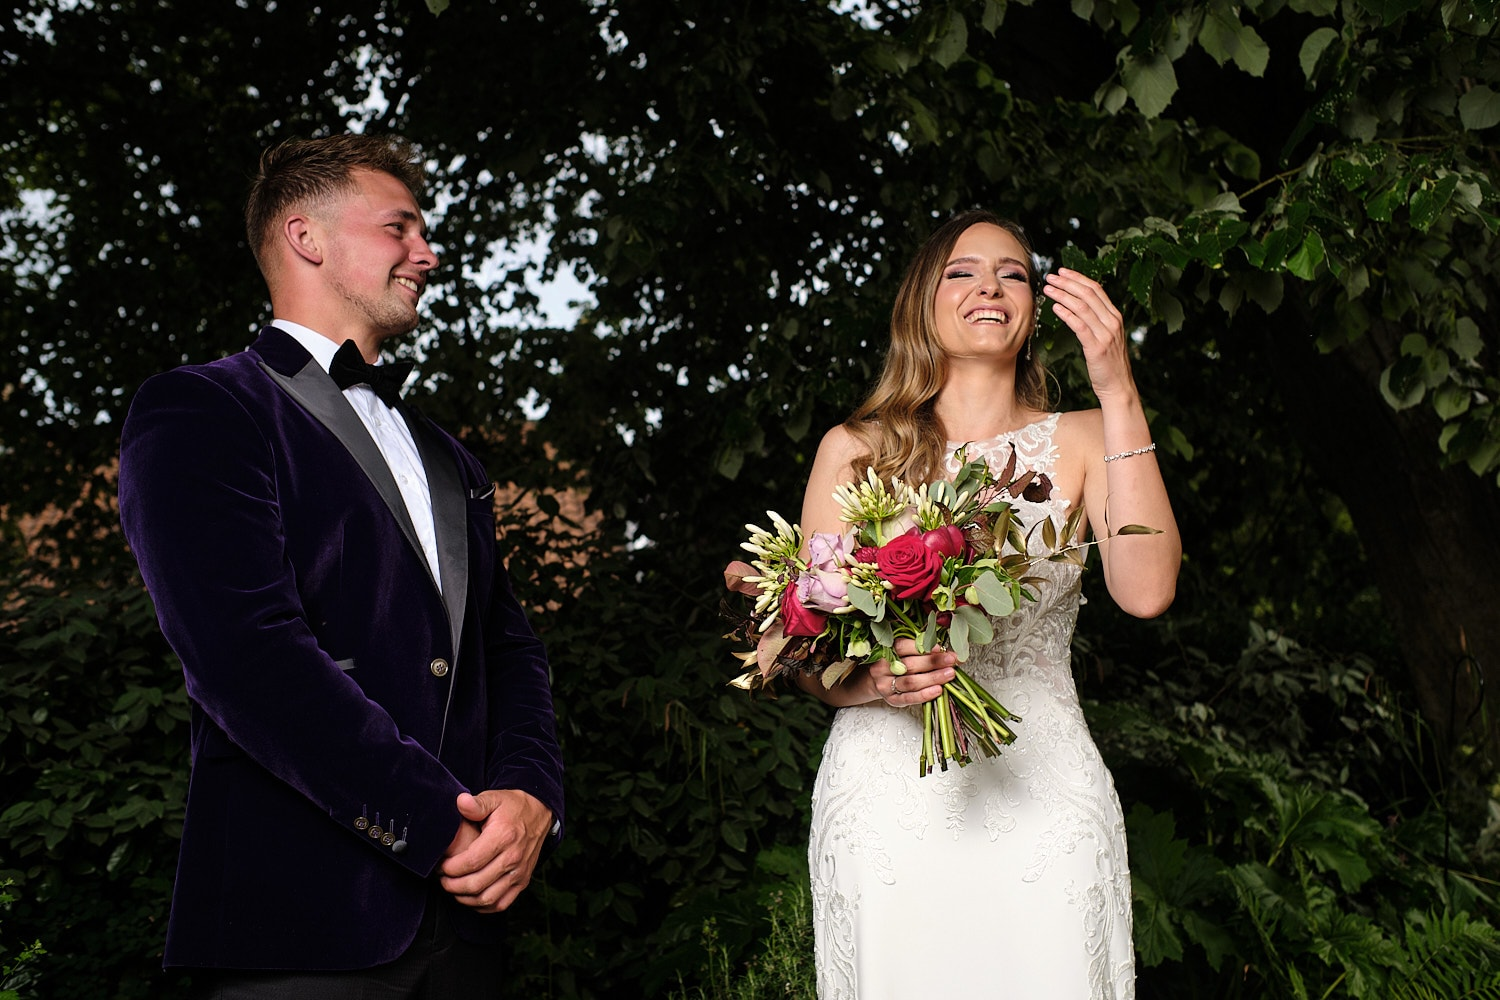 A bride & Groom laugh out loud at a we3dding at the elm tree Hundelby